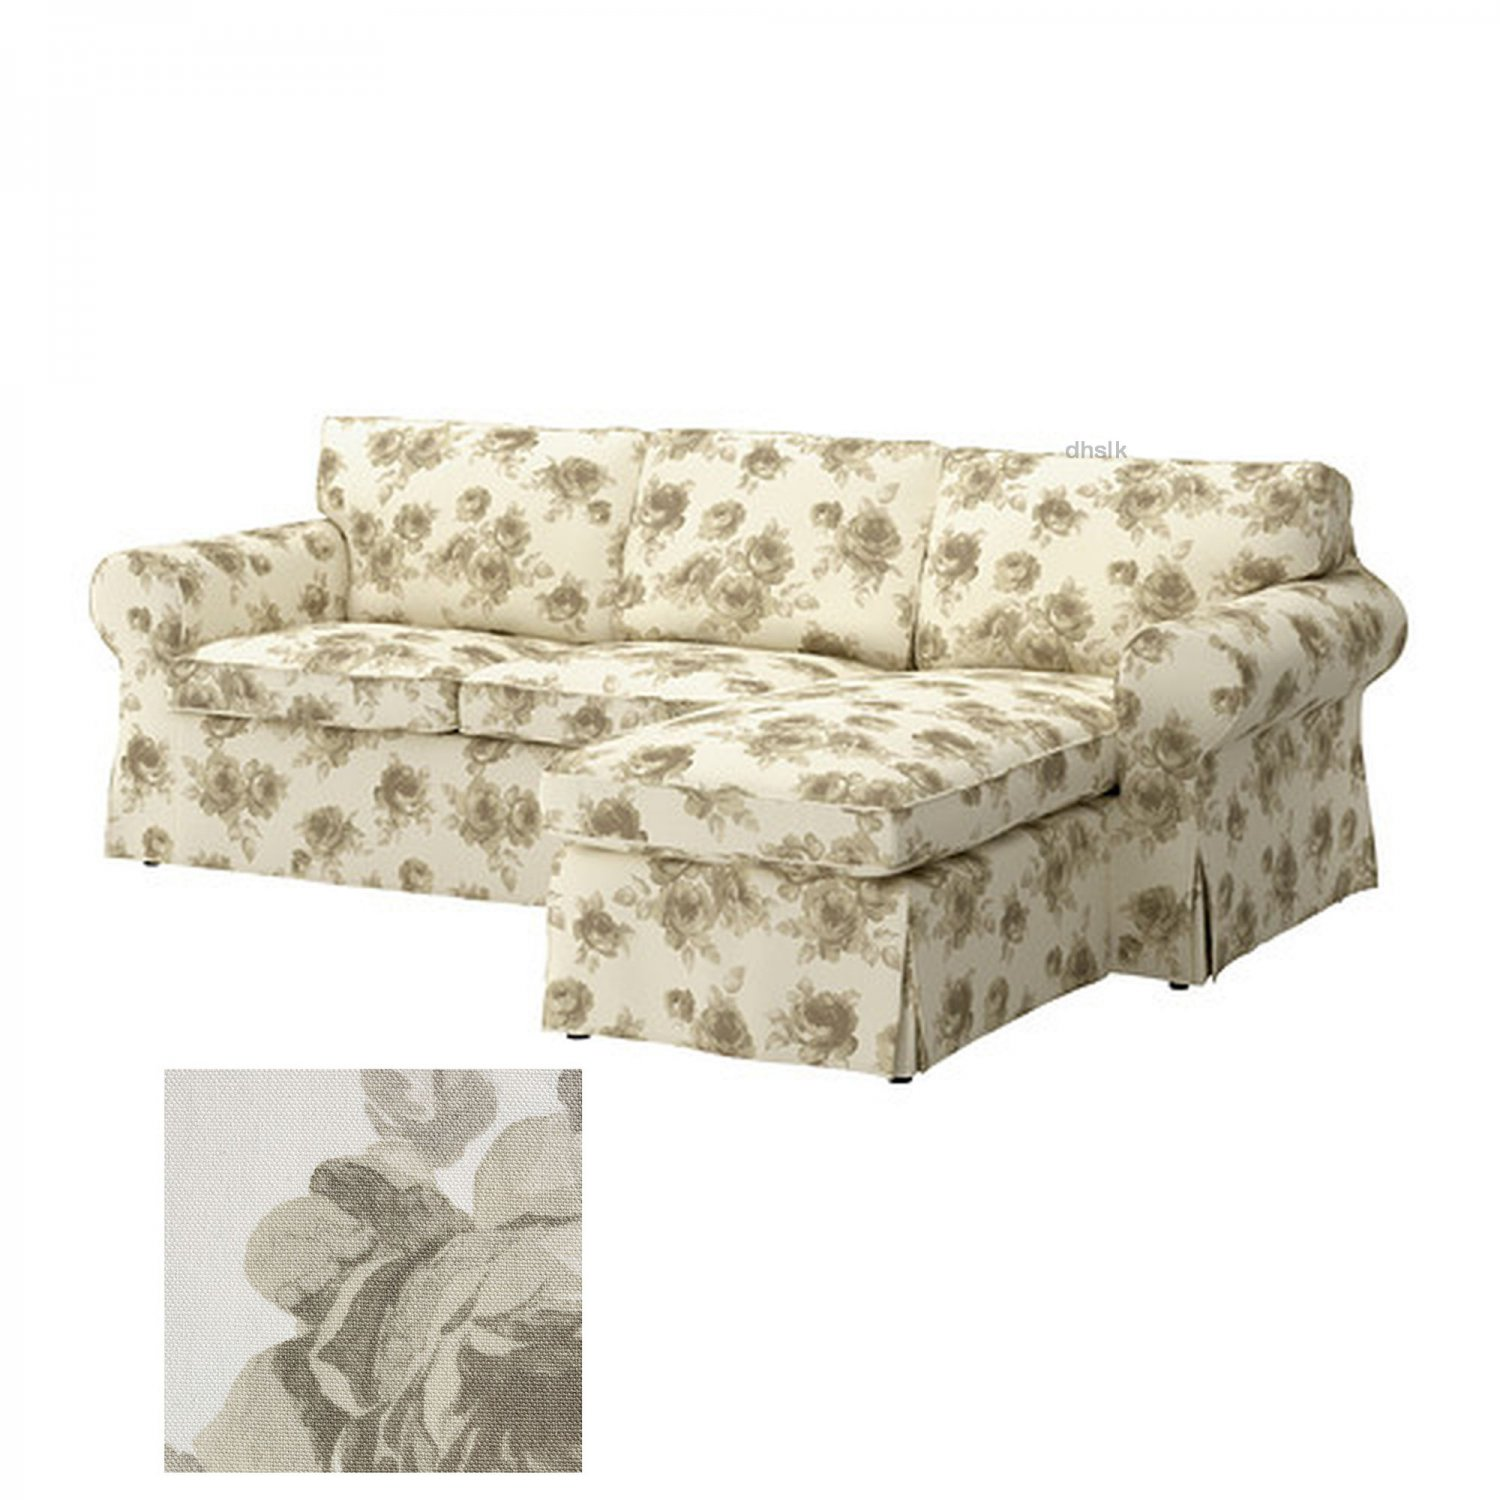 Ikea Ektorp 2 Seat Loveseat Sofa With Chaise Cover Slipcover Norlida Beige Floral On White